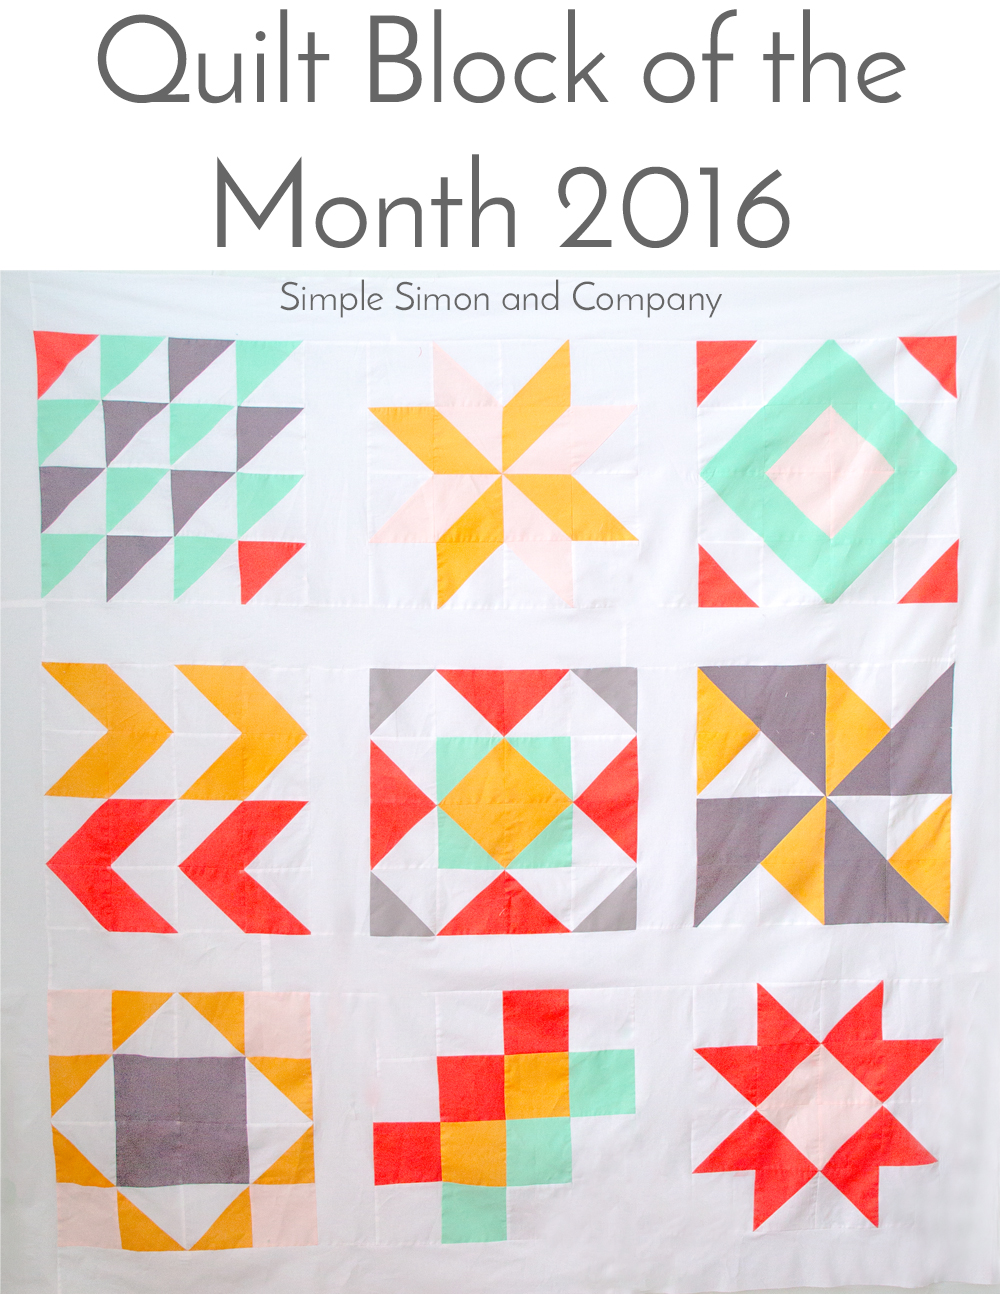 Quilt Patterns Block Of The Month : 2016 Quilt Block of the Month Yardage Requirements - Simple Simon and Company